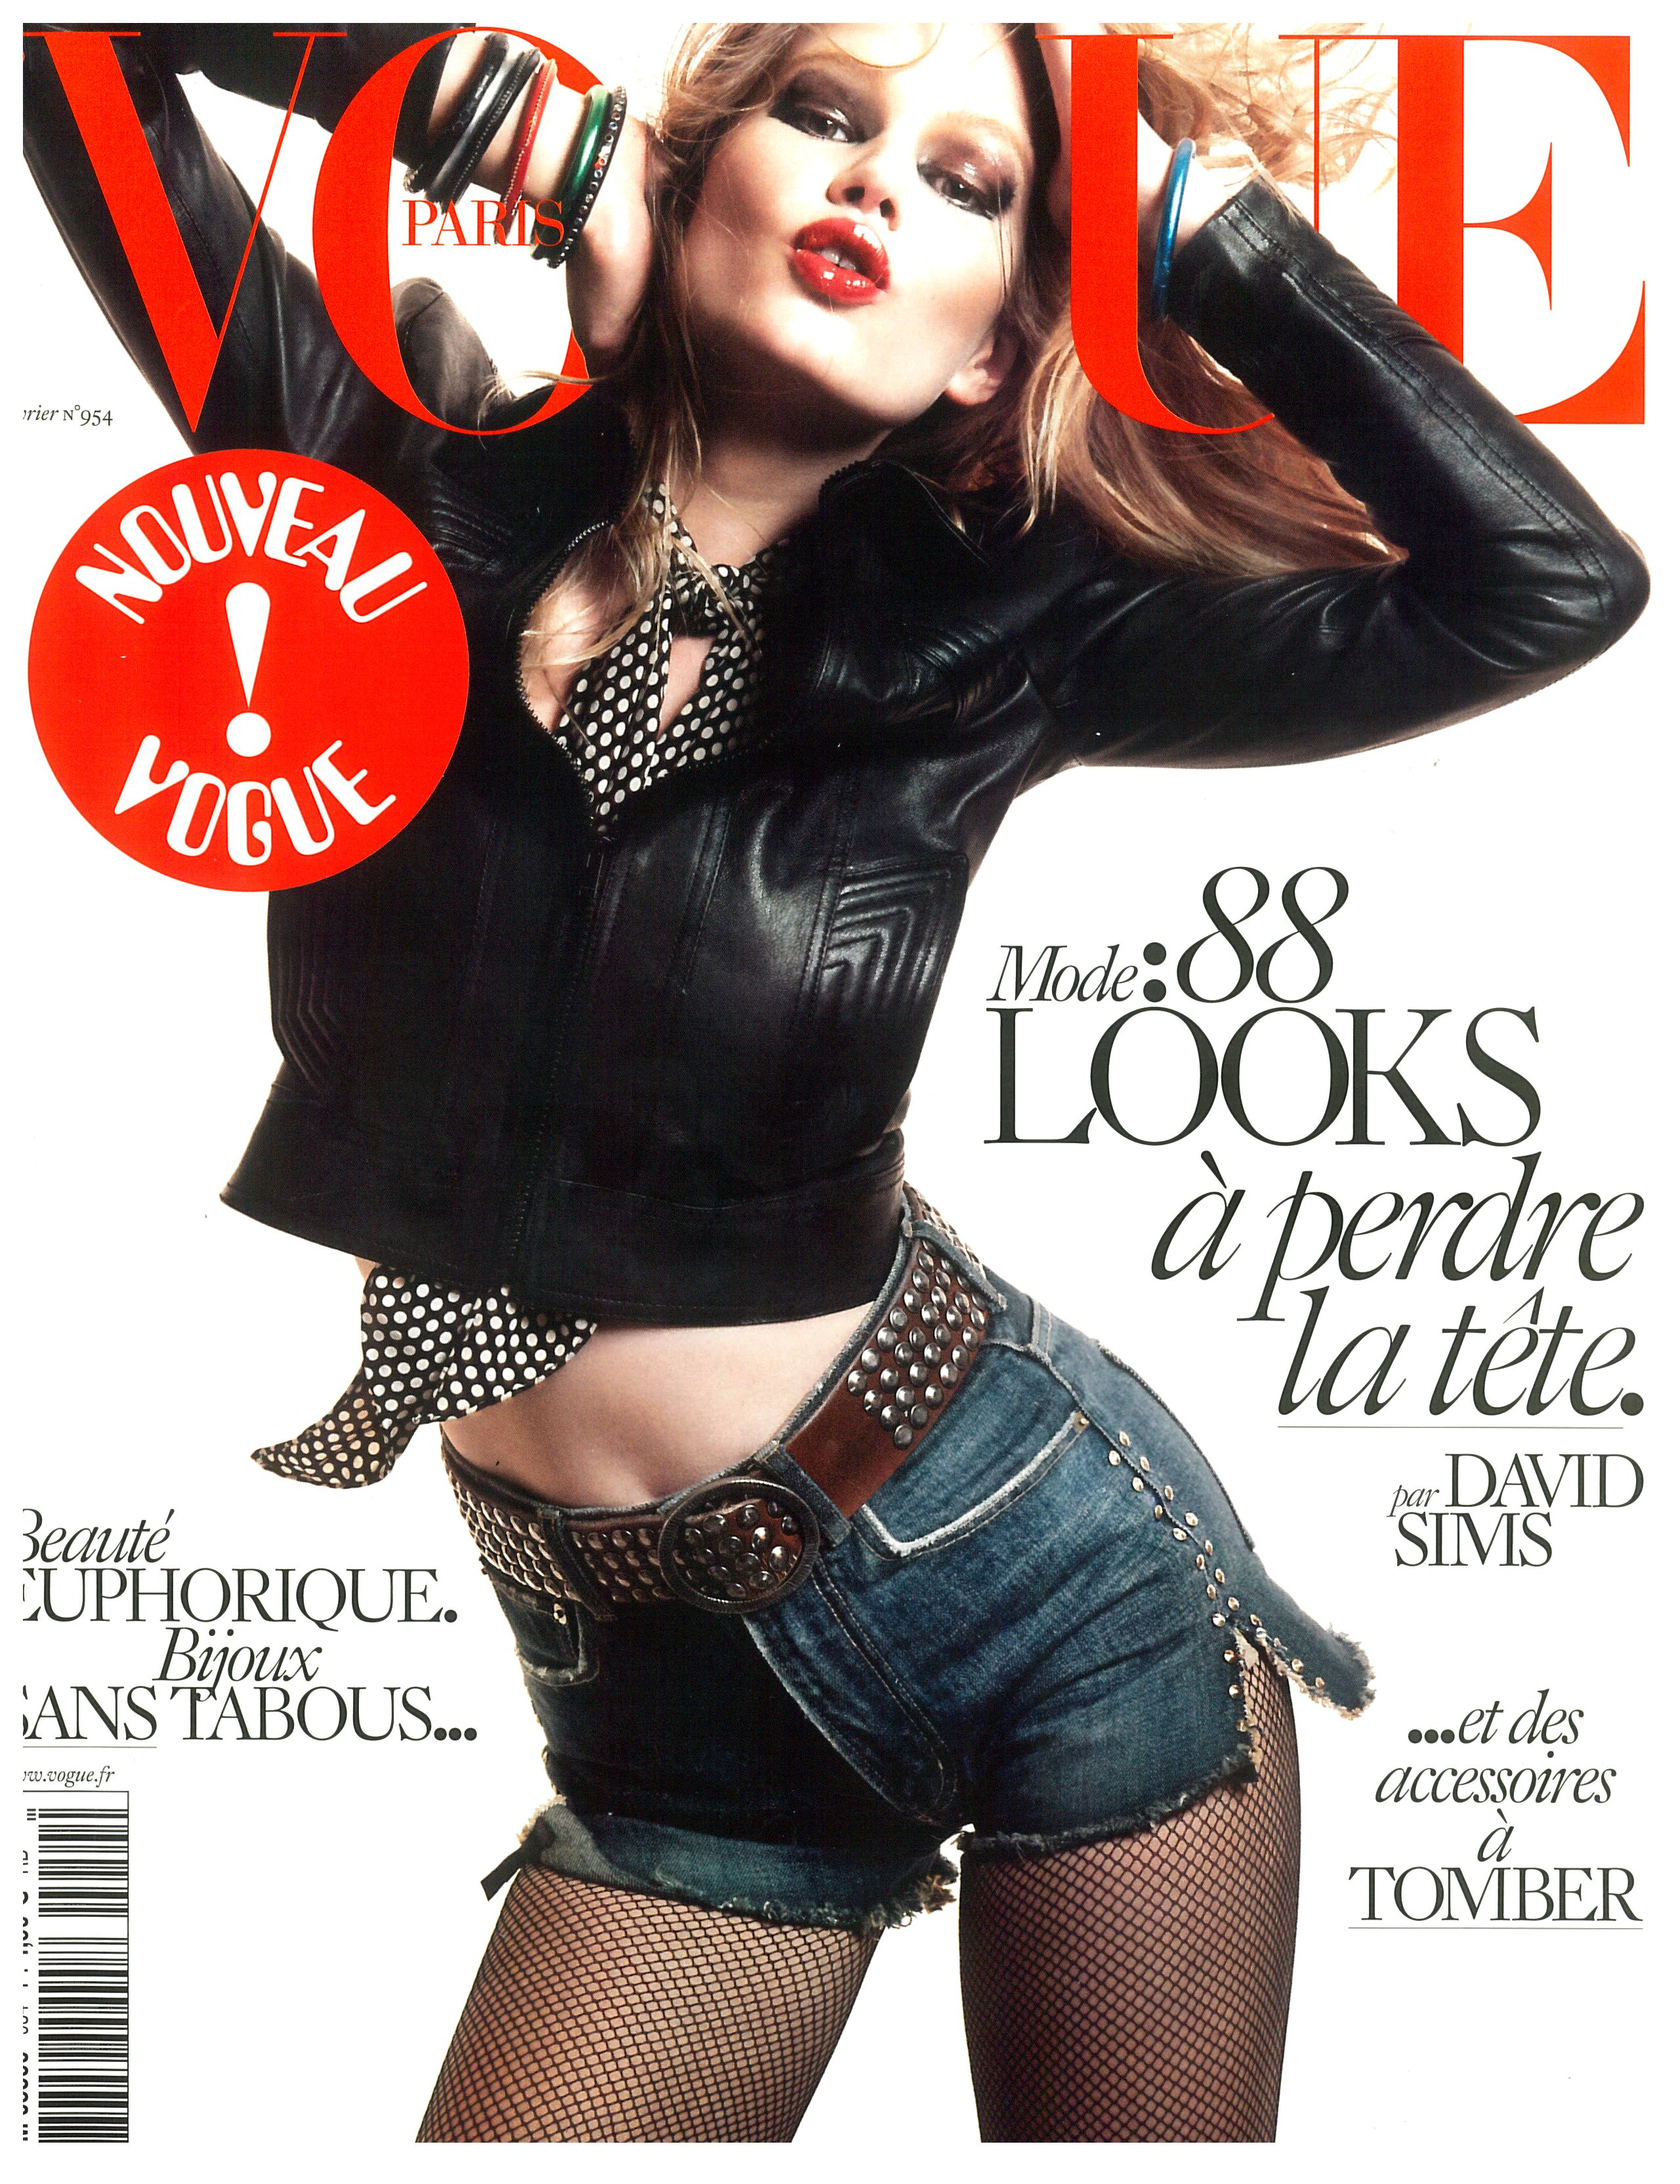 vogue 0 paris February 2015 cover.jpg